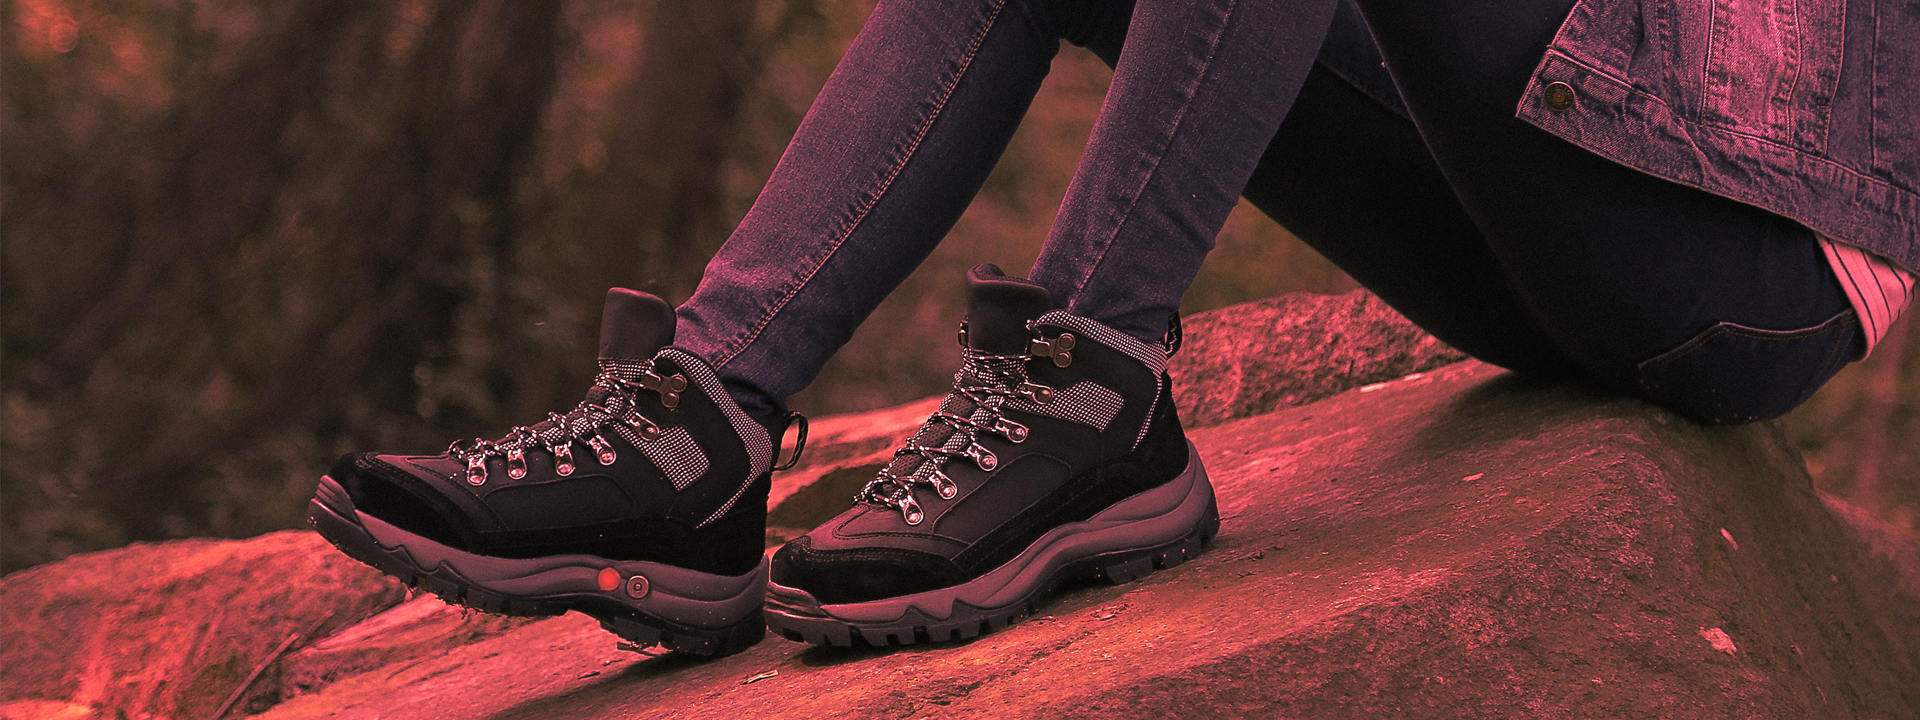 heated boots cold weather snow shoes for women